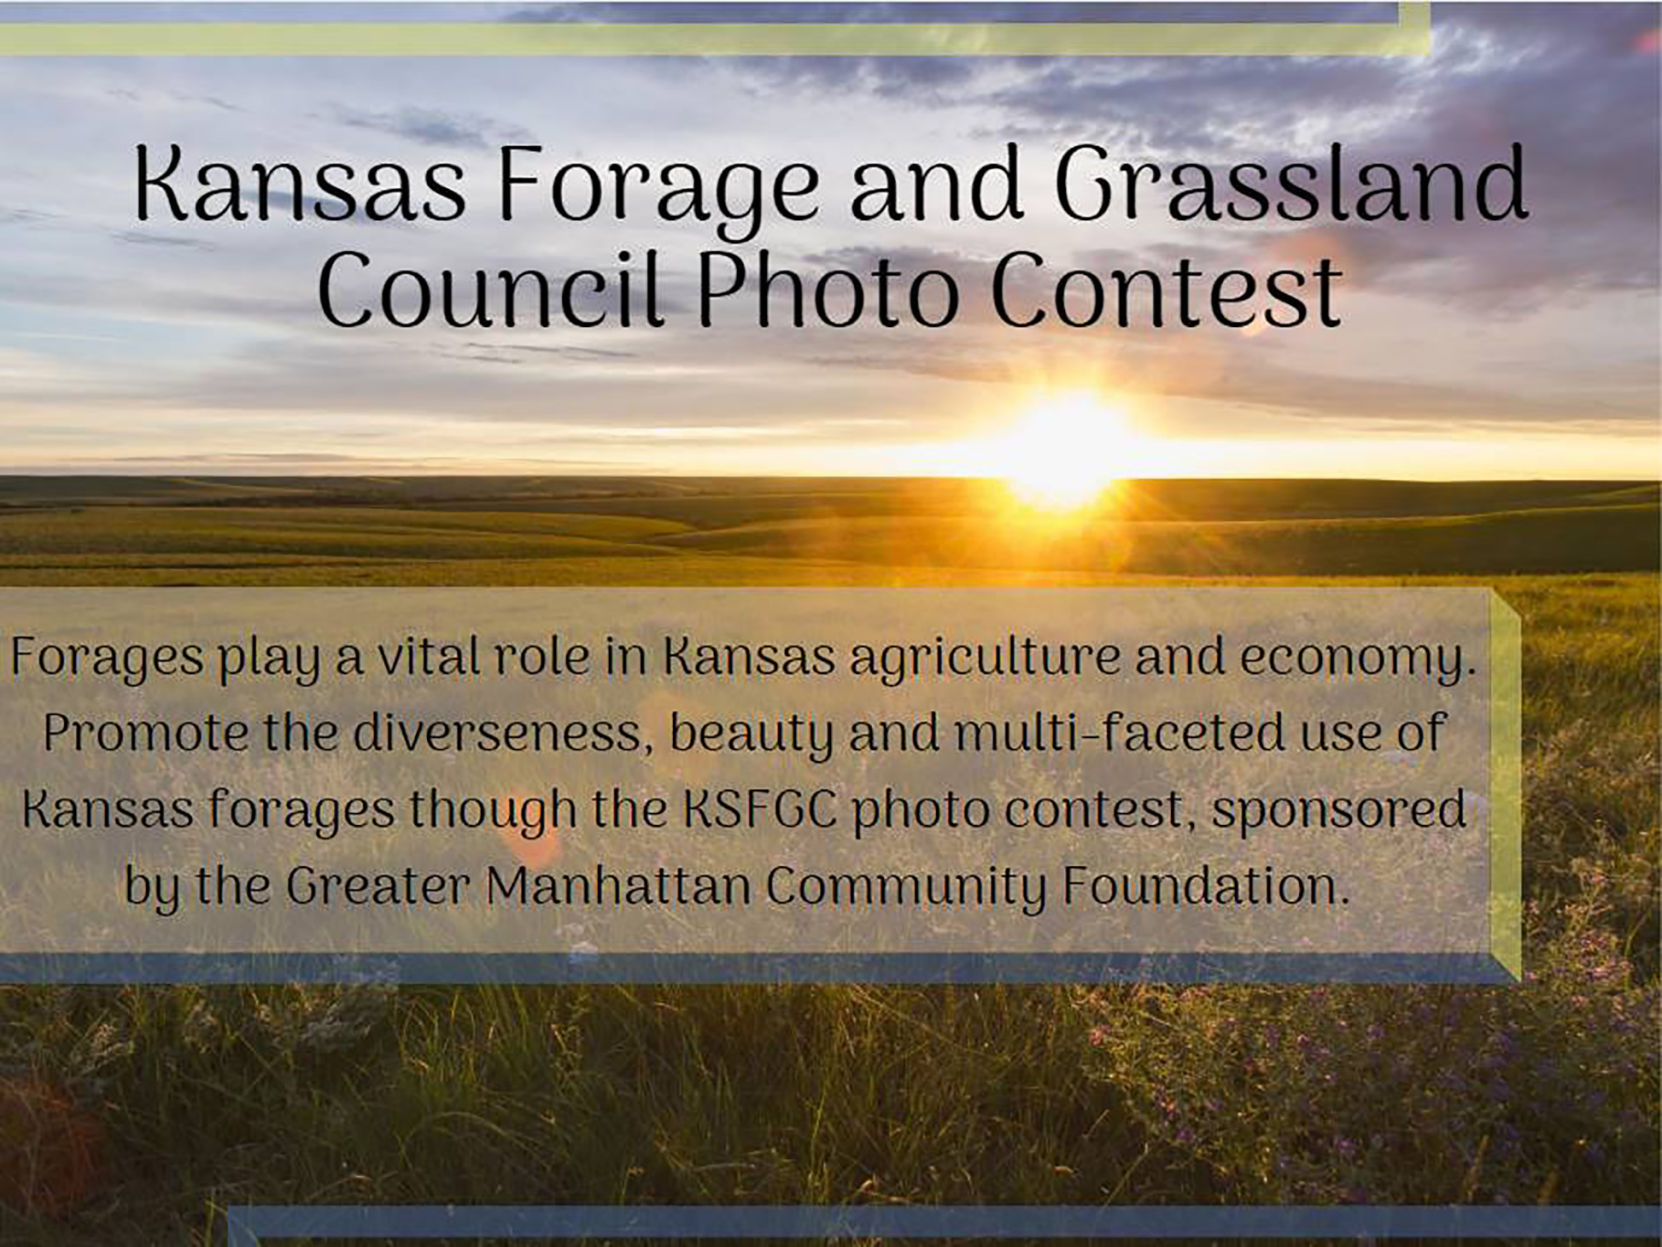 Kansas Forage and Grassland Council organizes its first photography contest